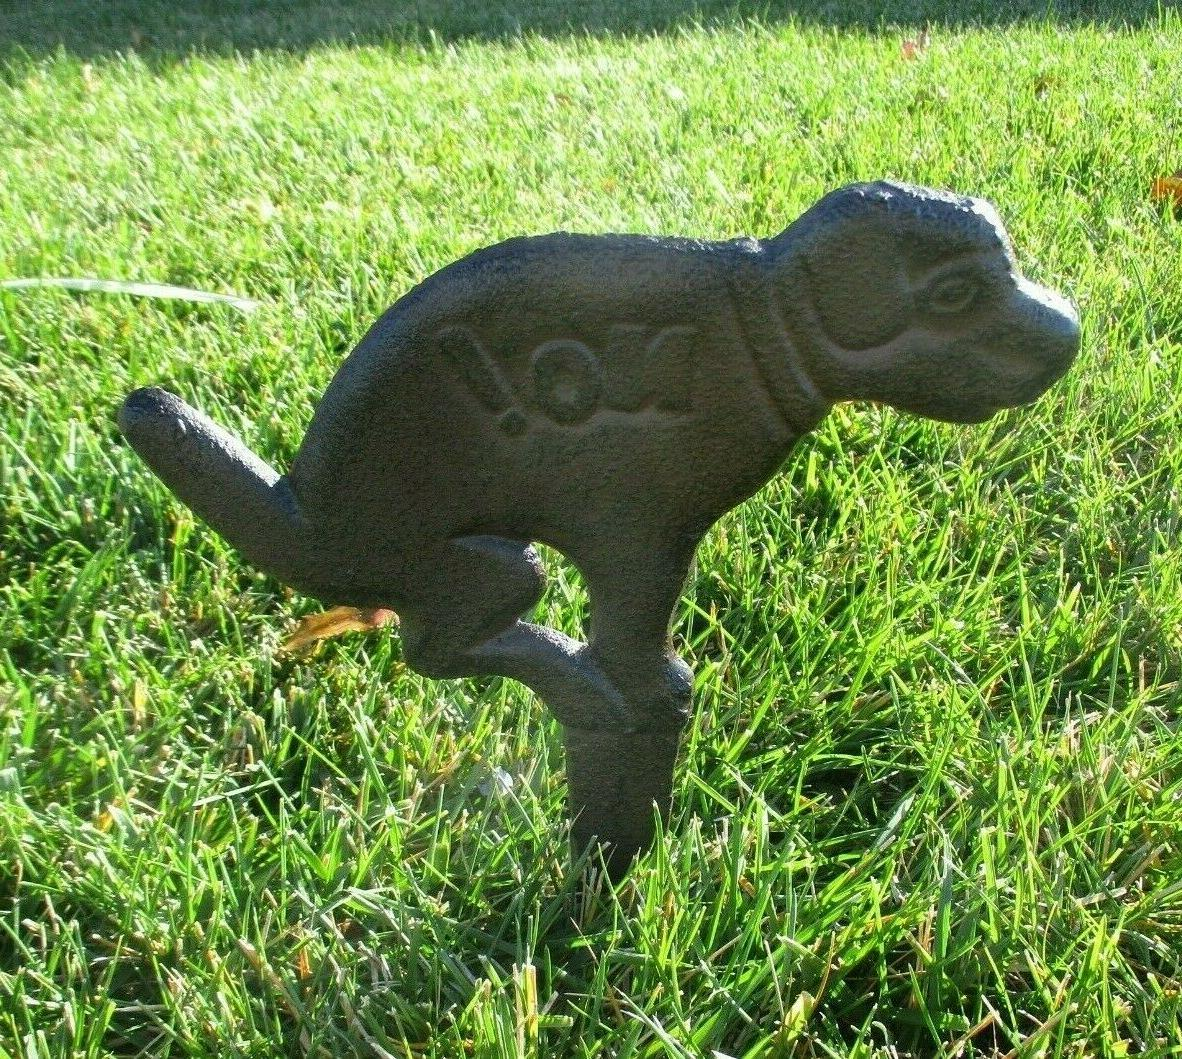 RUSTIC NO DOG POOPING POOP SIGN FOR LAWN YARD STAKE PET WAST